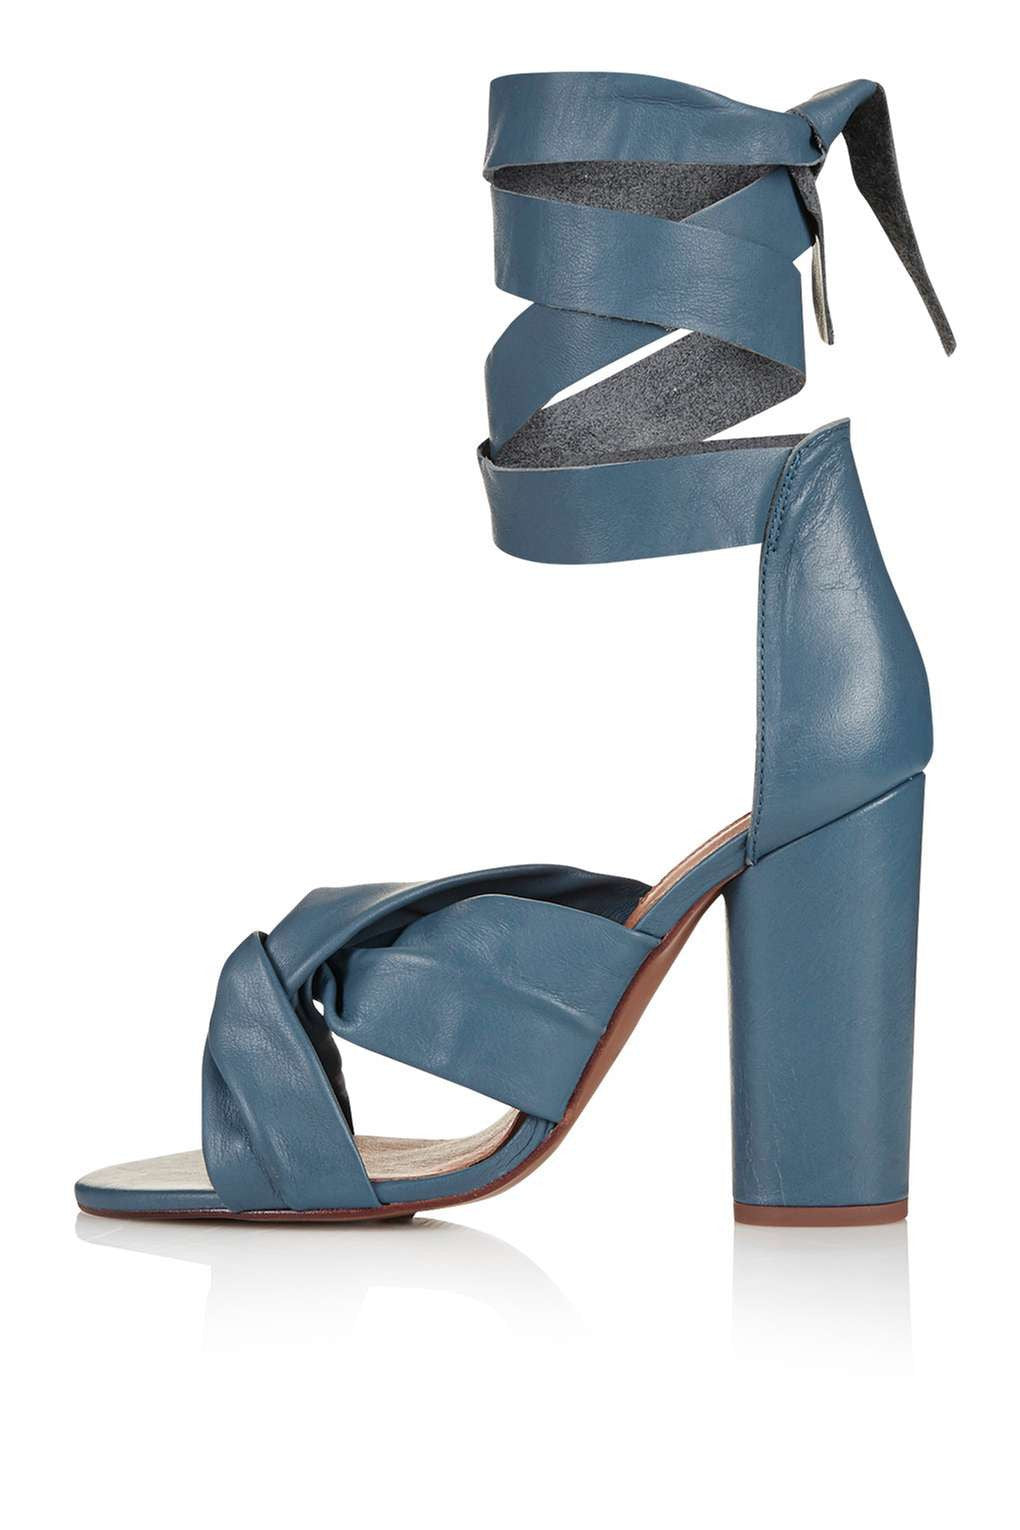 TopShop ROSA Knotted High Sandals